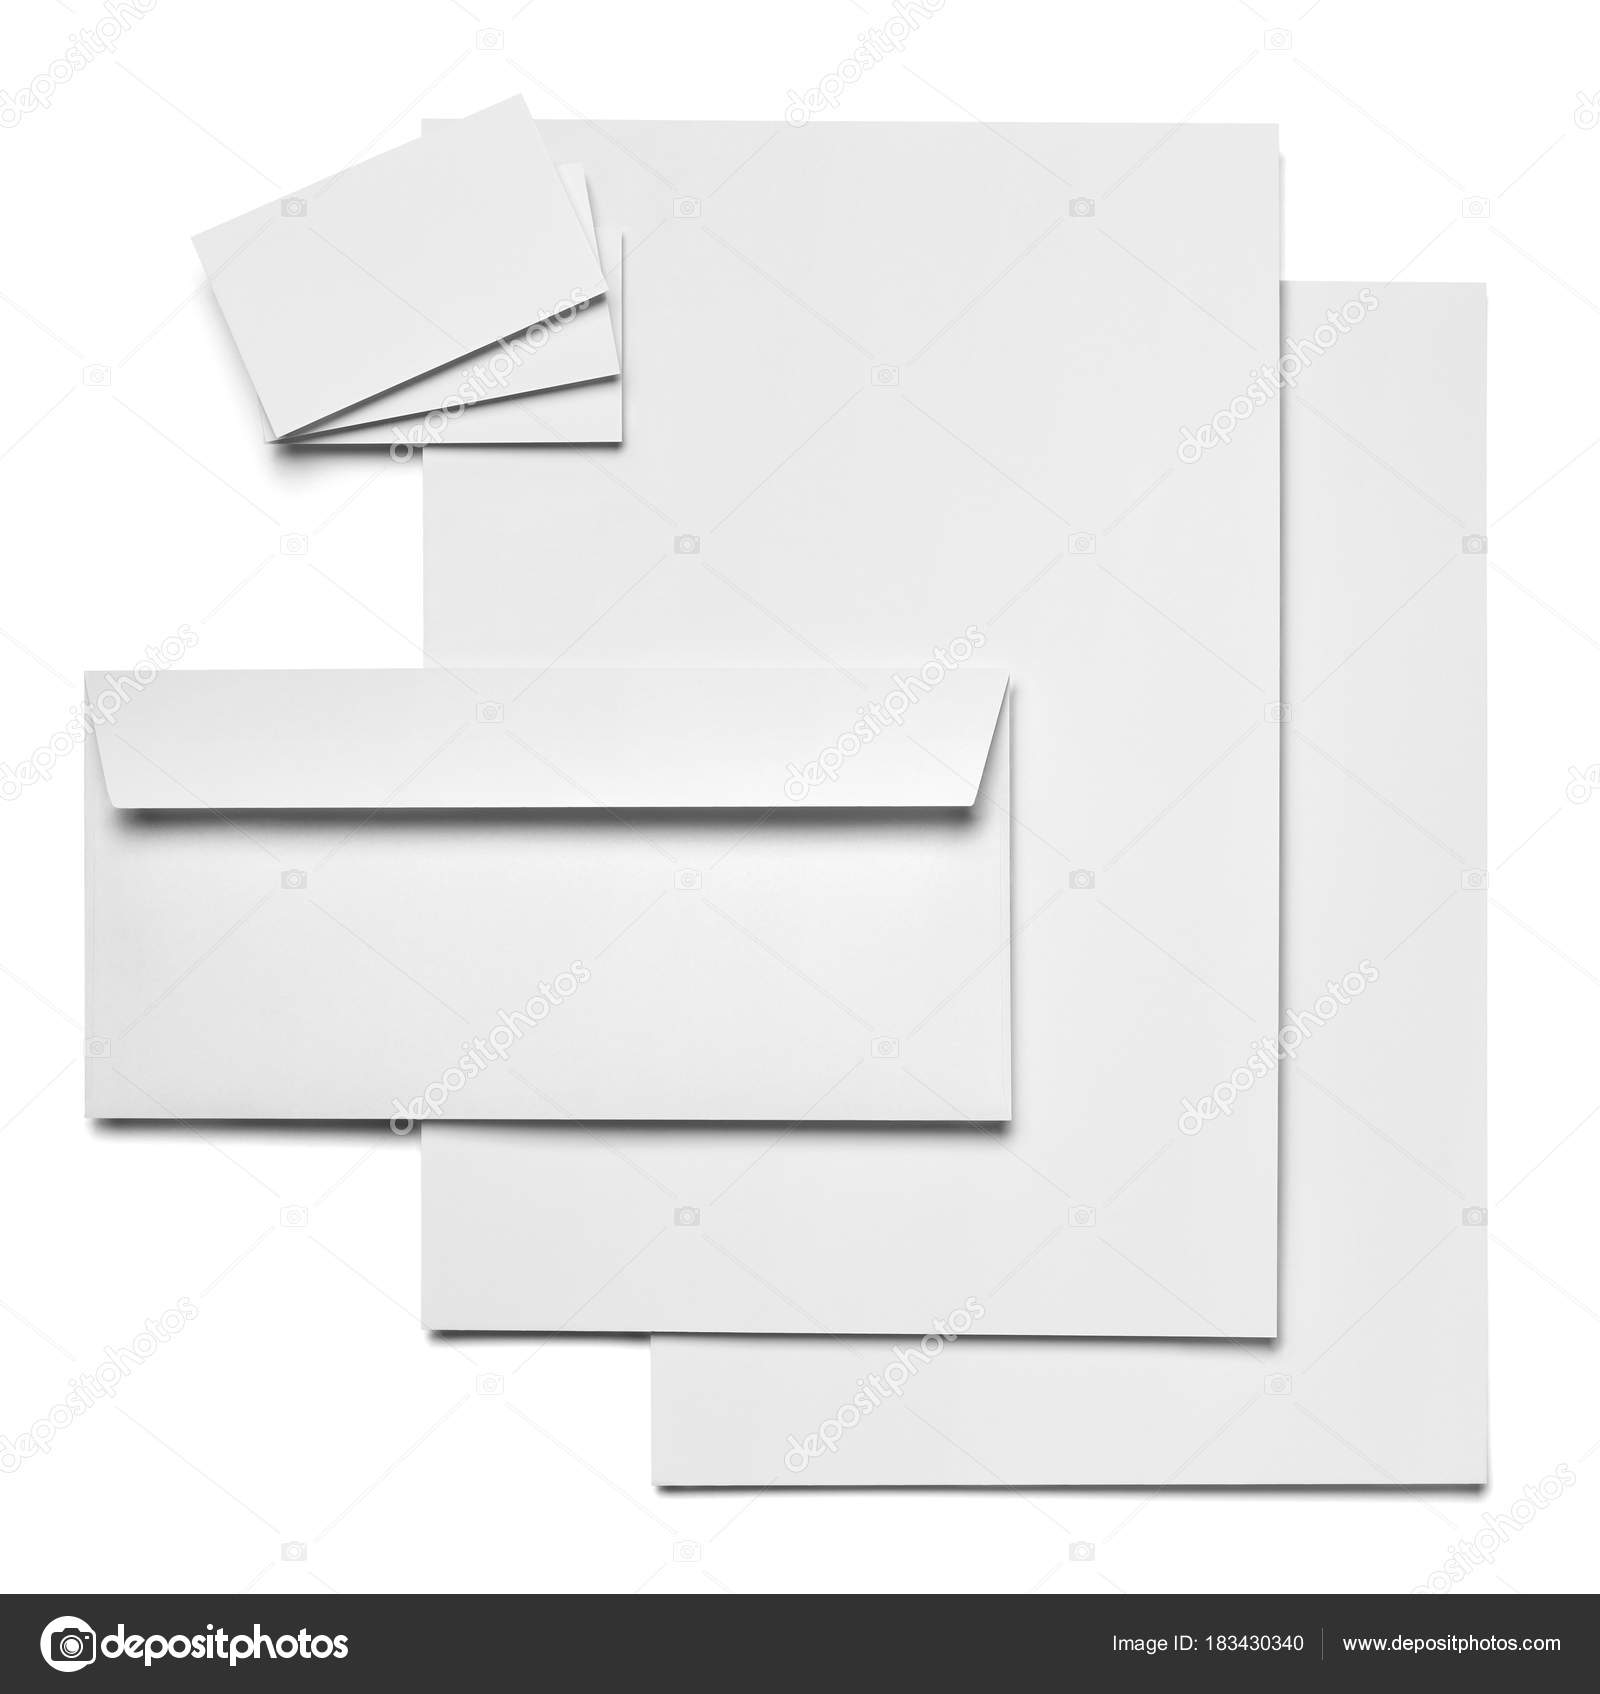 Envelope letter card paper template business stock photo envelope letter card paper template business stock photo friedricerecipe Image collections